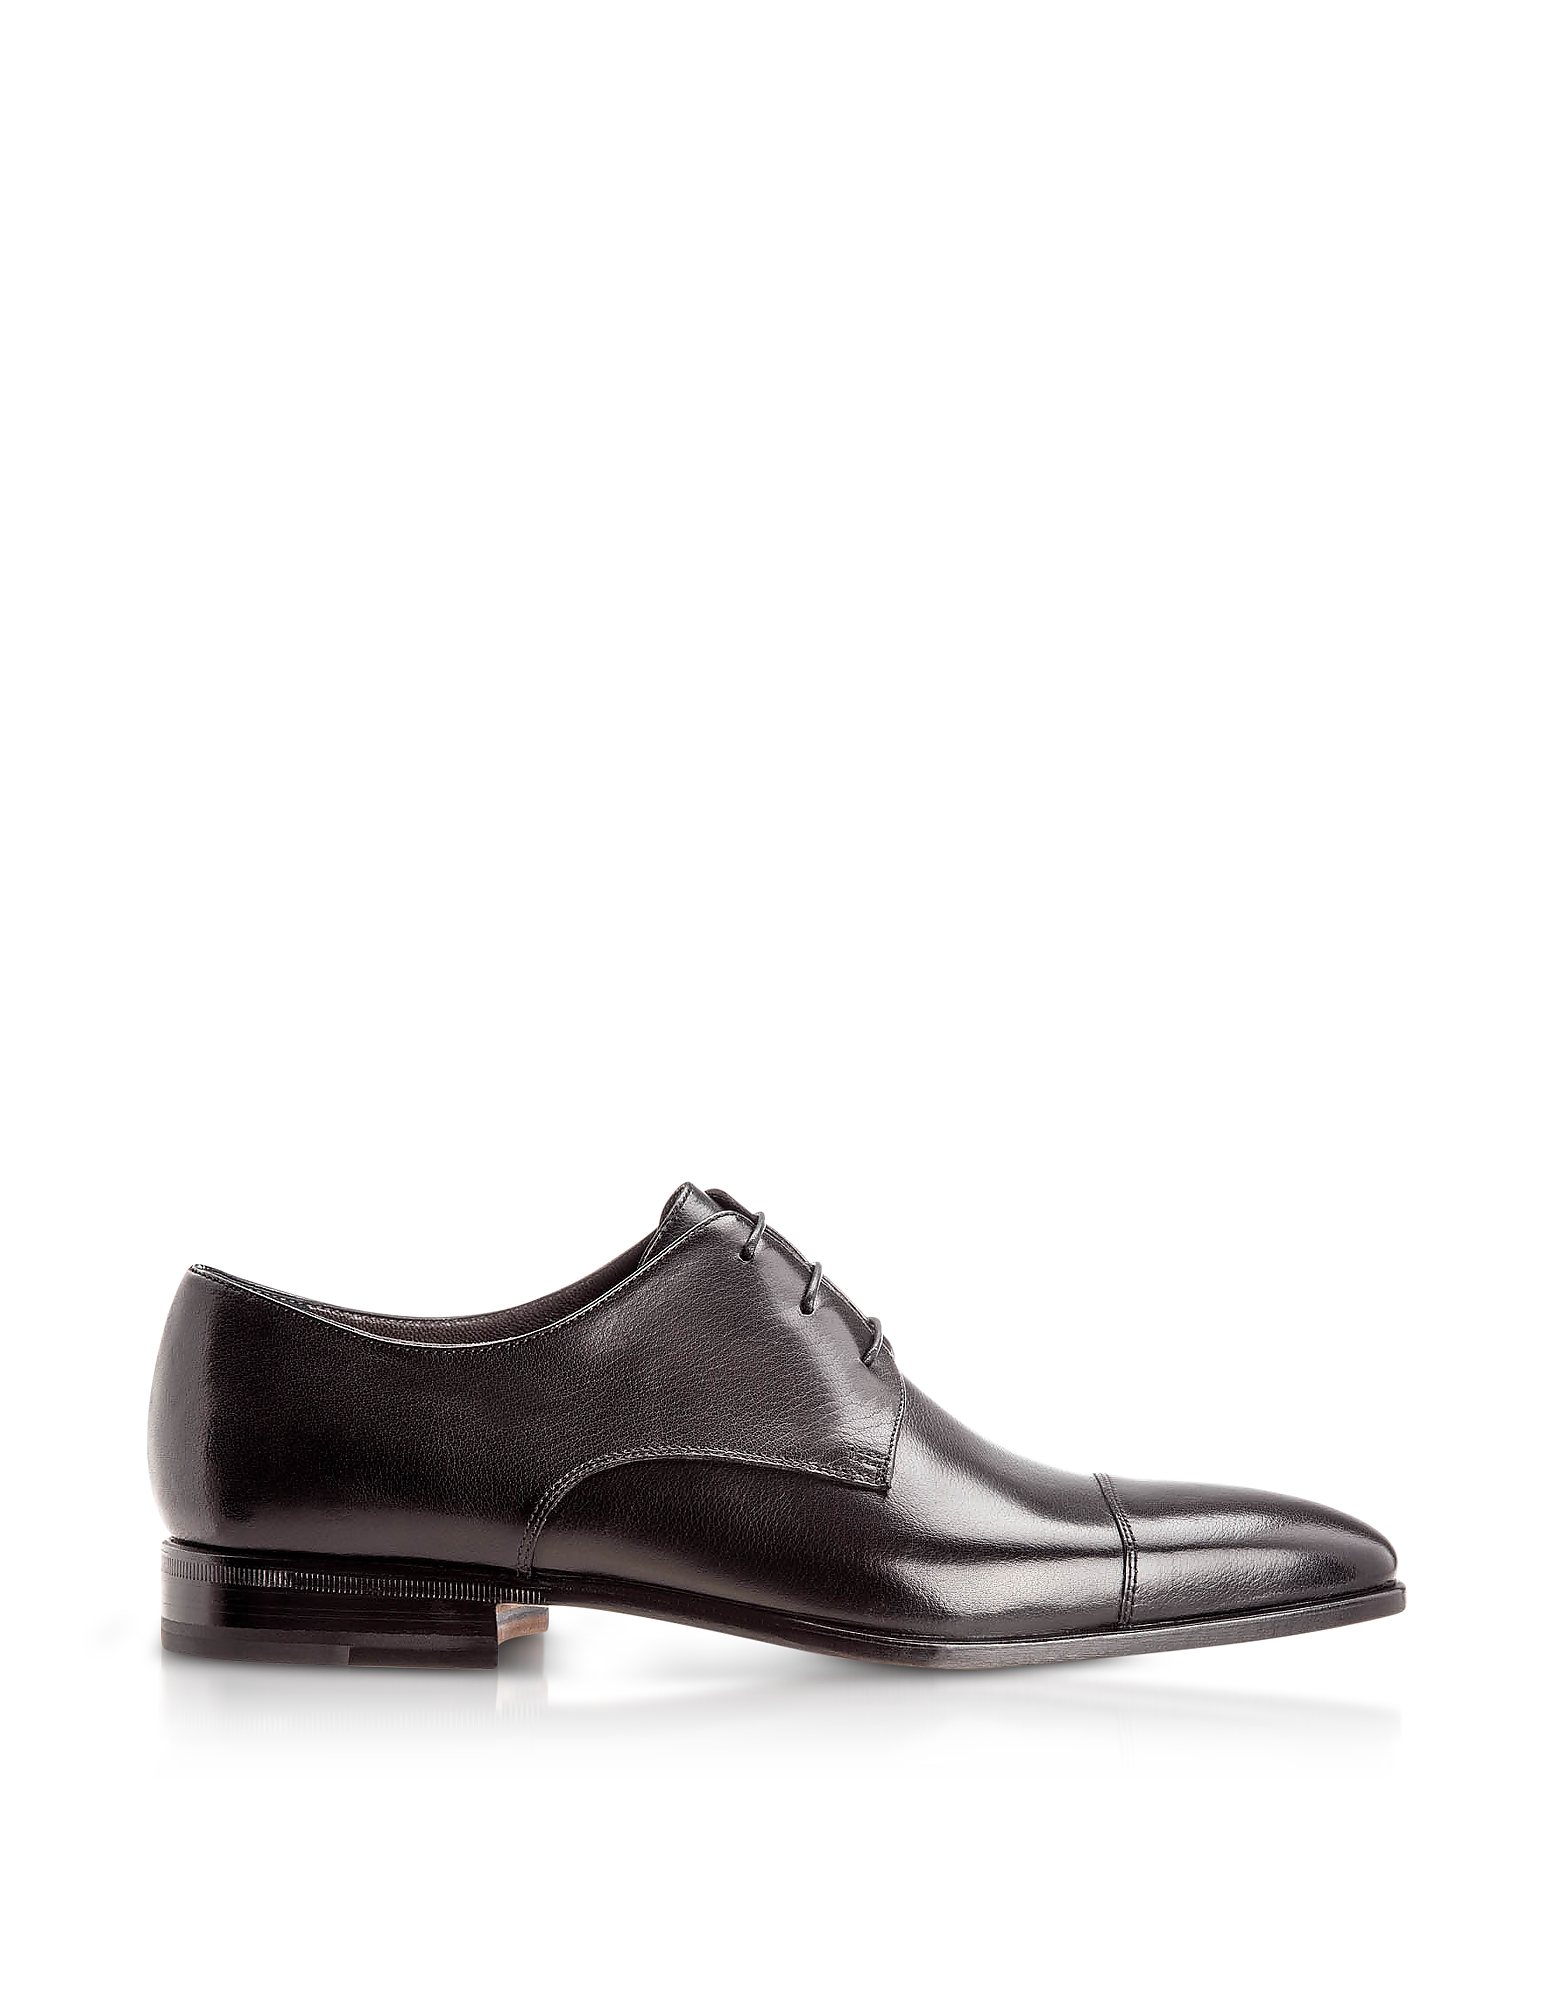 Moreschi Shoes, Lipsia Black Buffalo Leather Derby Shoes